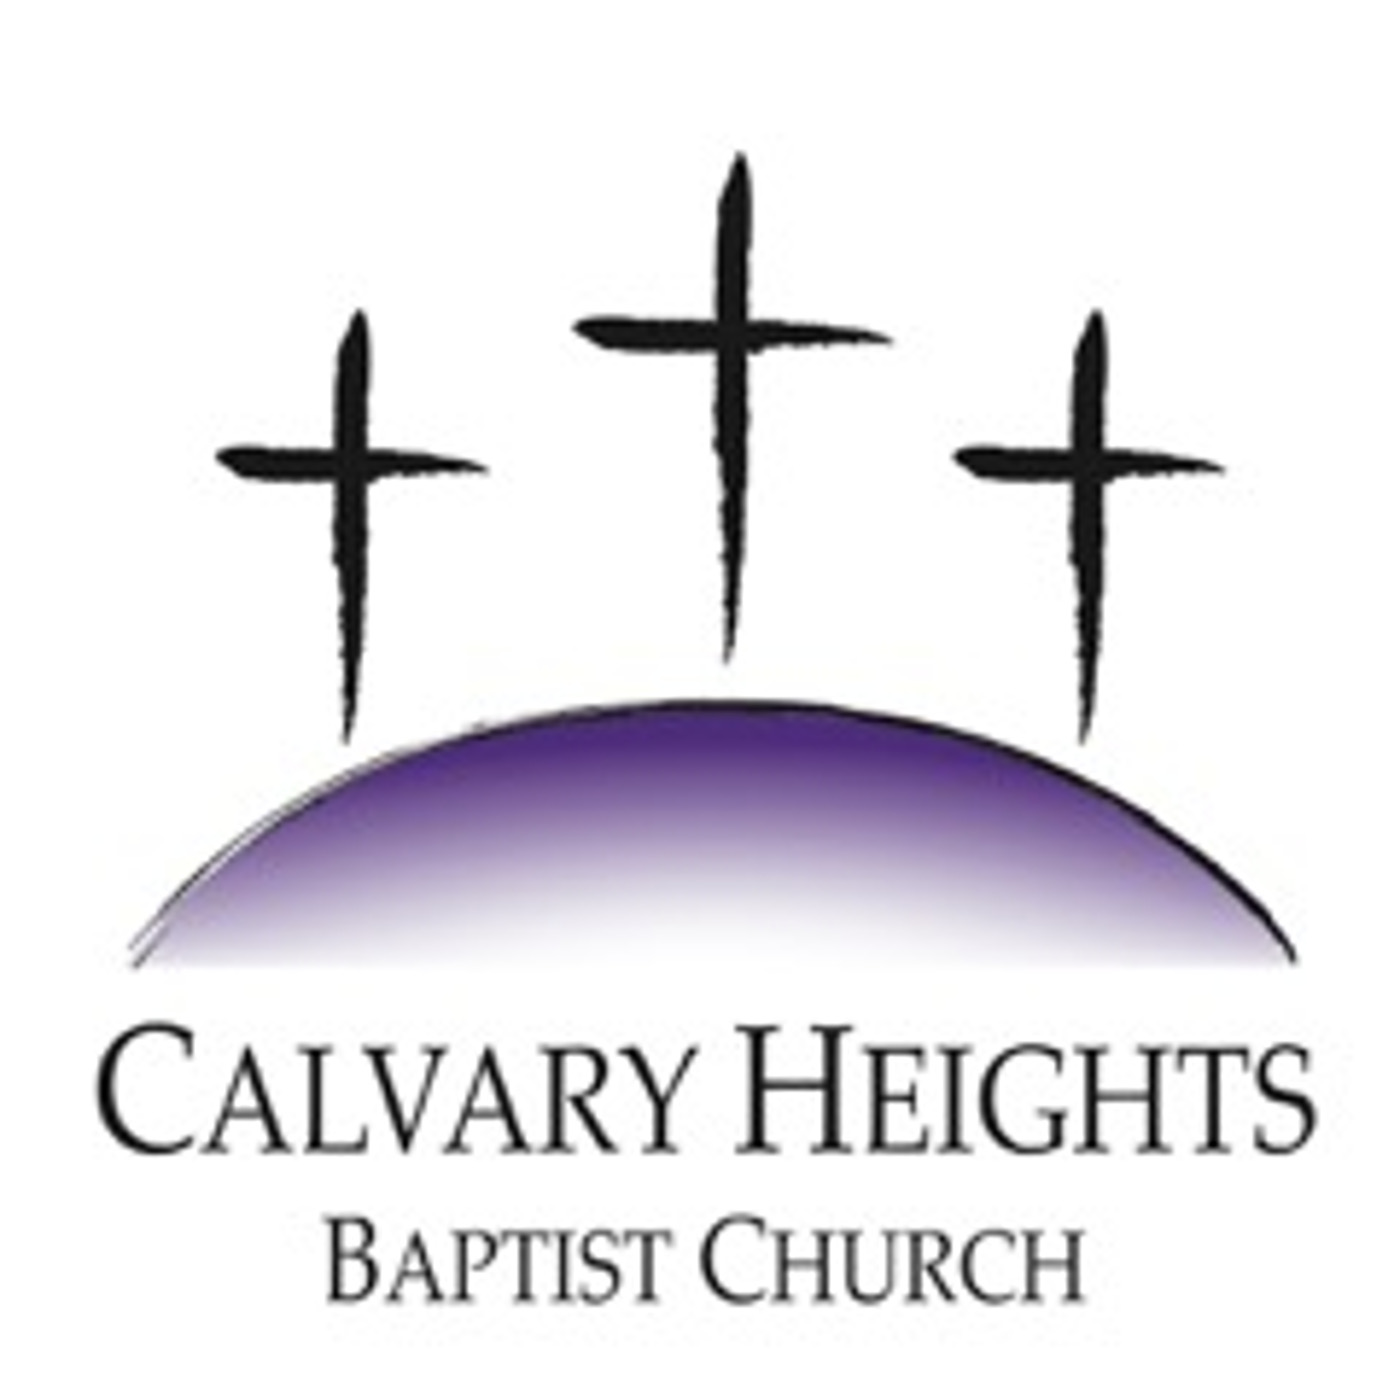 Calvary Heights Baptist Church of Martinsville, IN